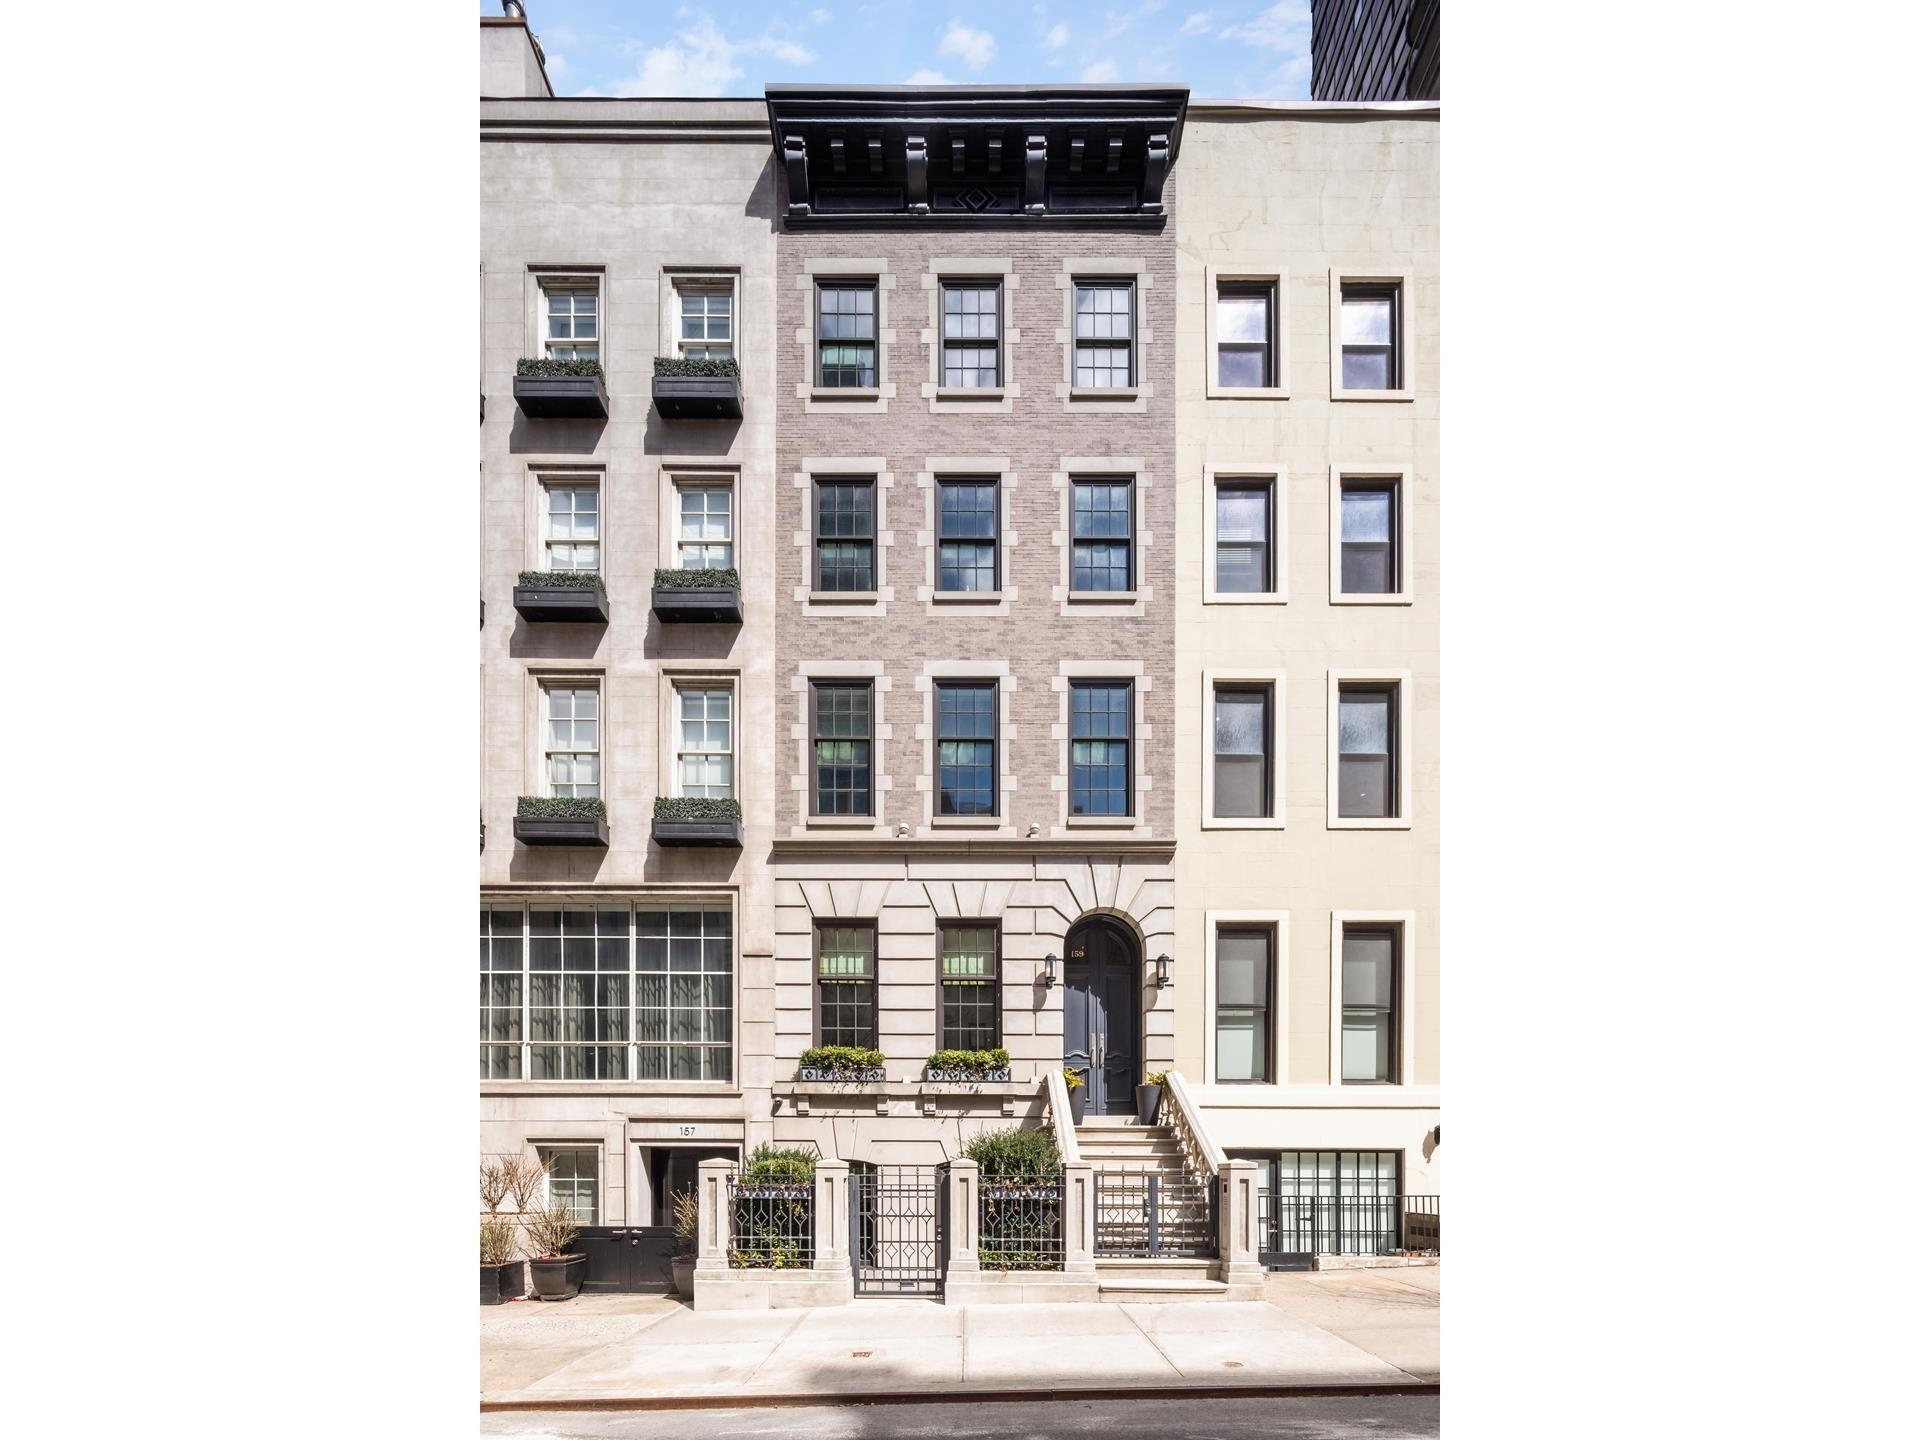 23. Single Family Townhouse for Sale at 159 E 61ST ST , TOWNHOUSE Lenox Hill, New York, NY 10065